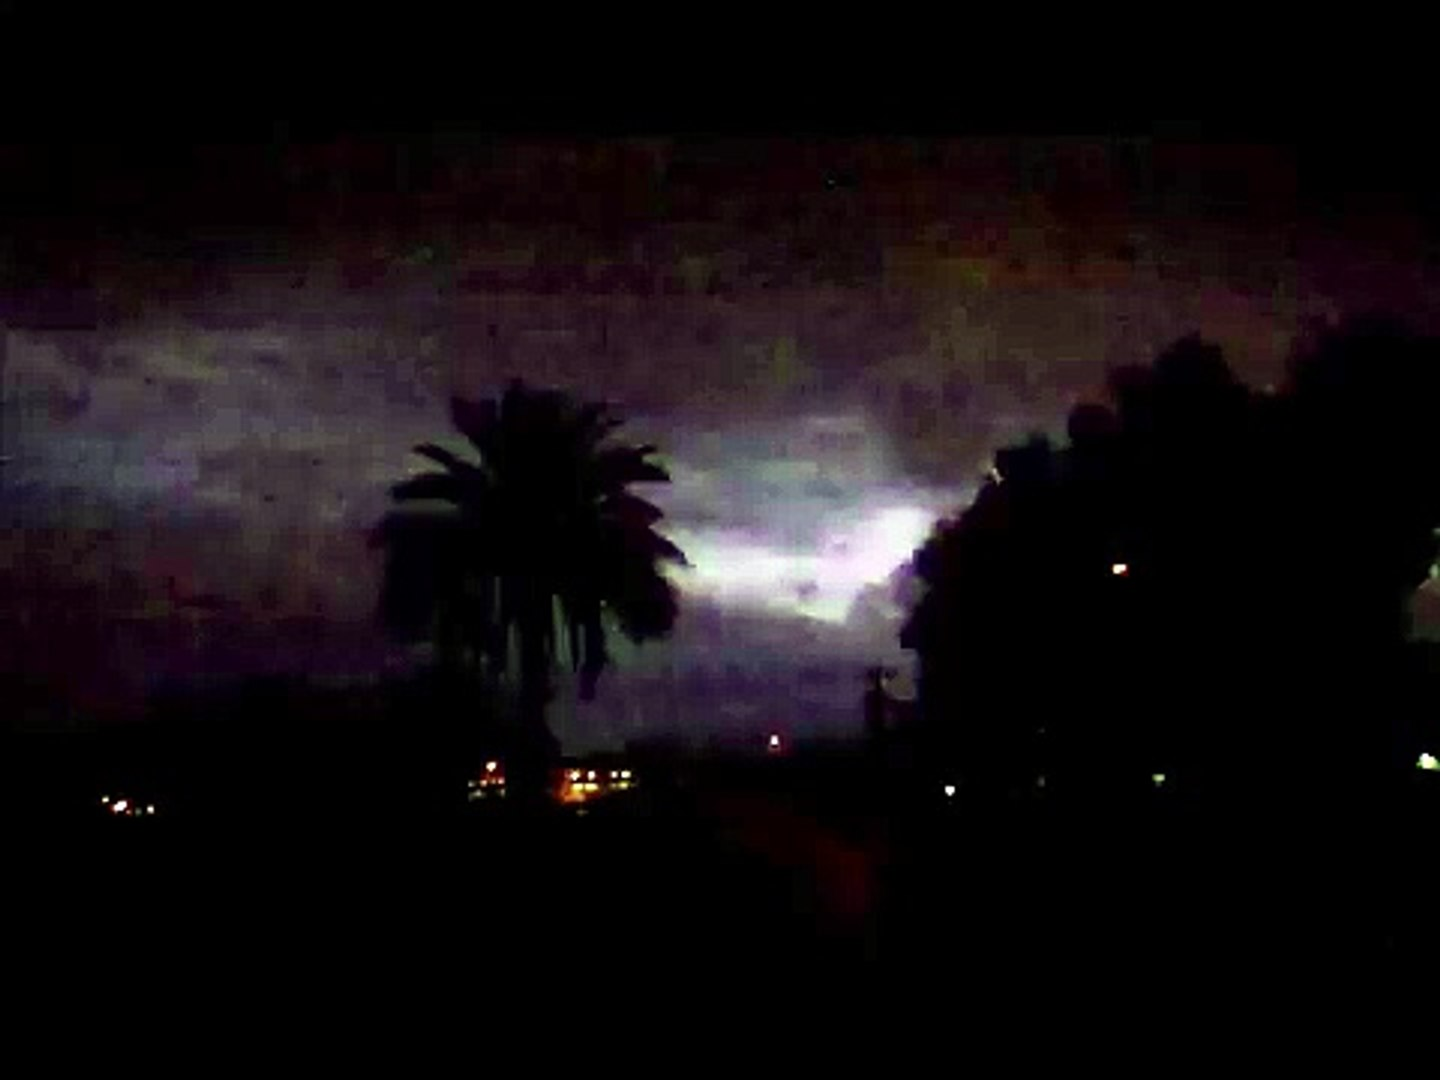 Last of the Phx Monsoon Videos for 2012